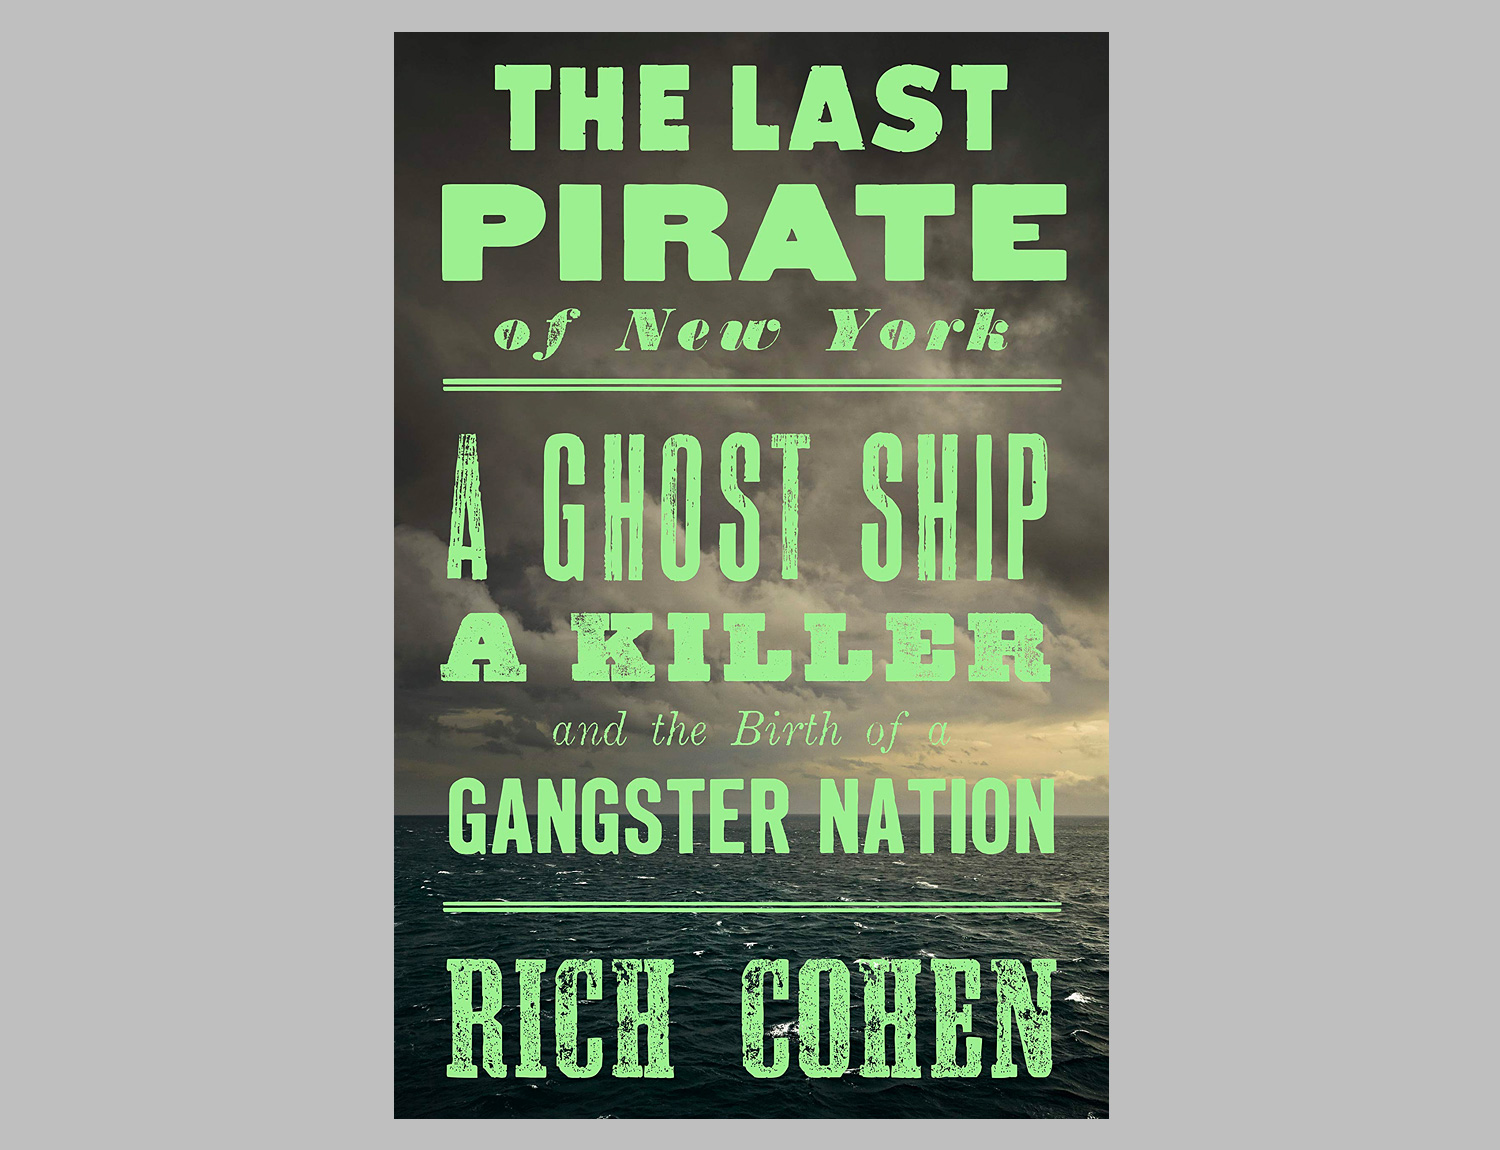 The Last Pirate of New York: A Ghost Ship, a Killer, and the Birth of a Gangster Nation at werd.com